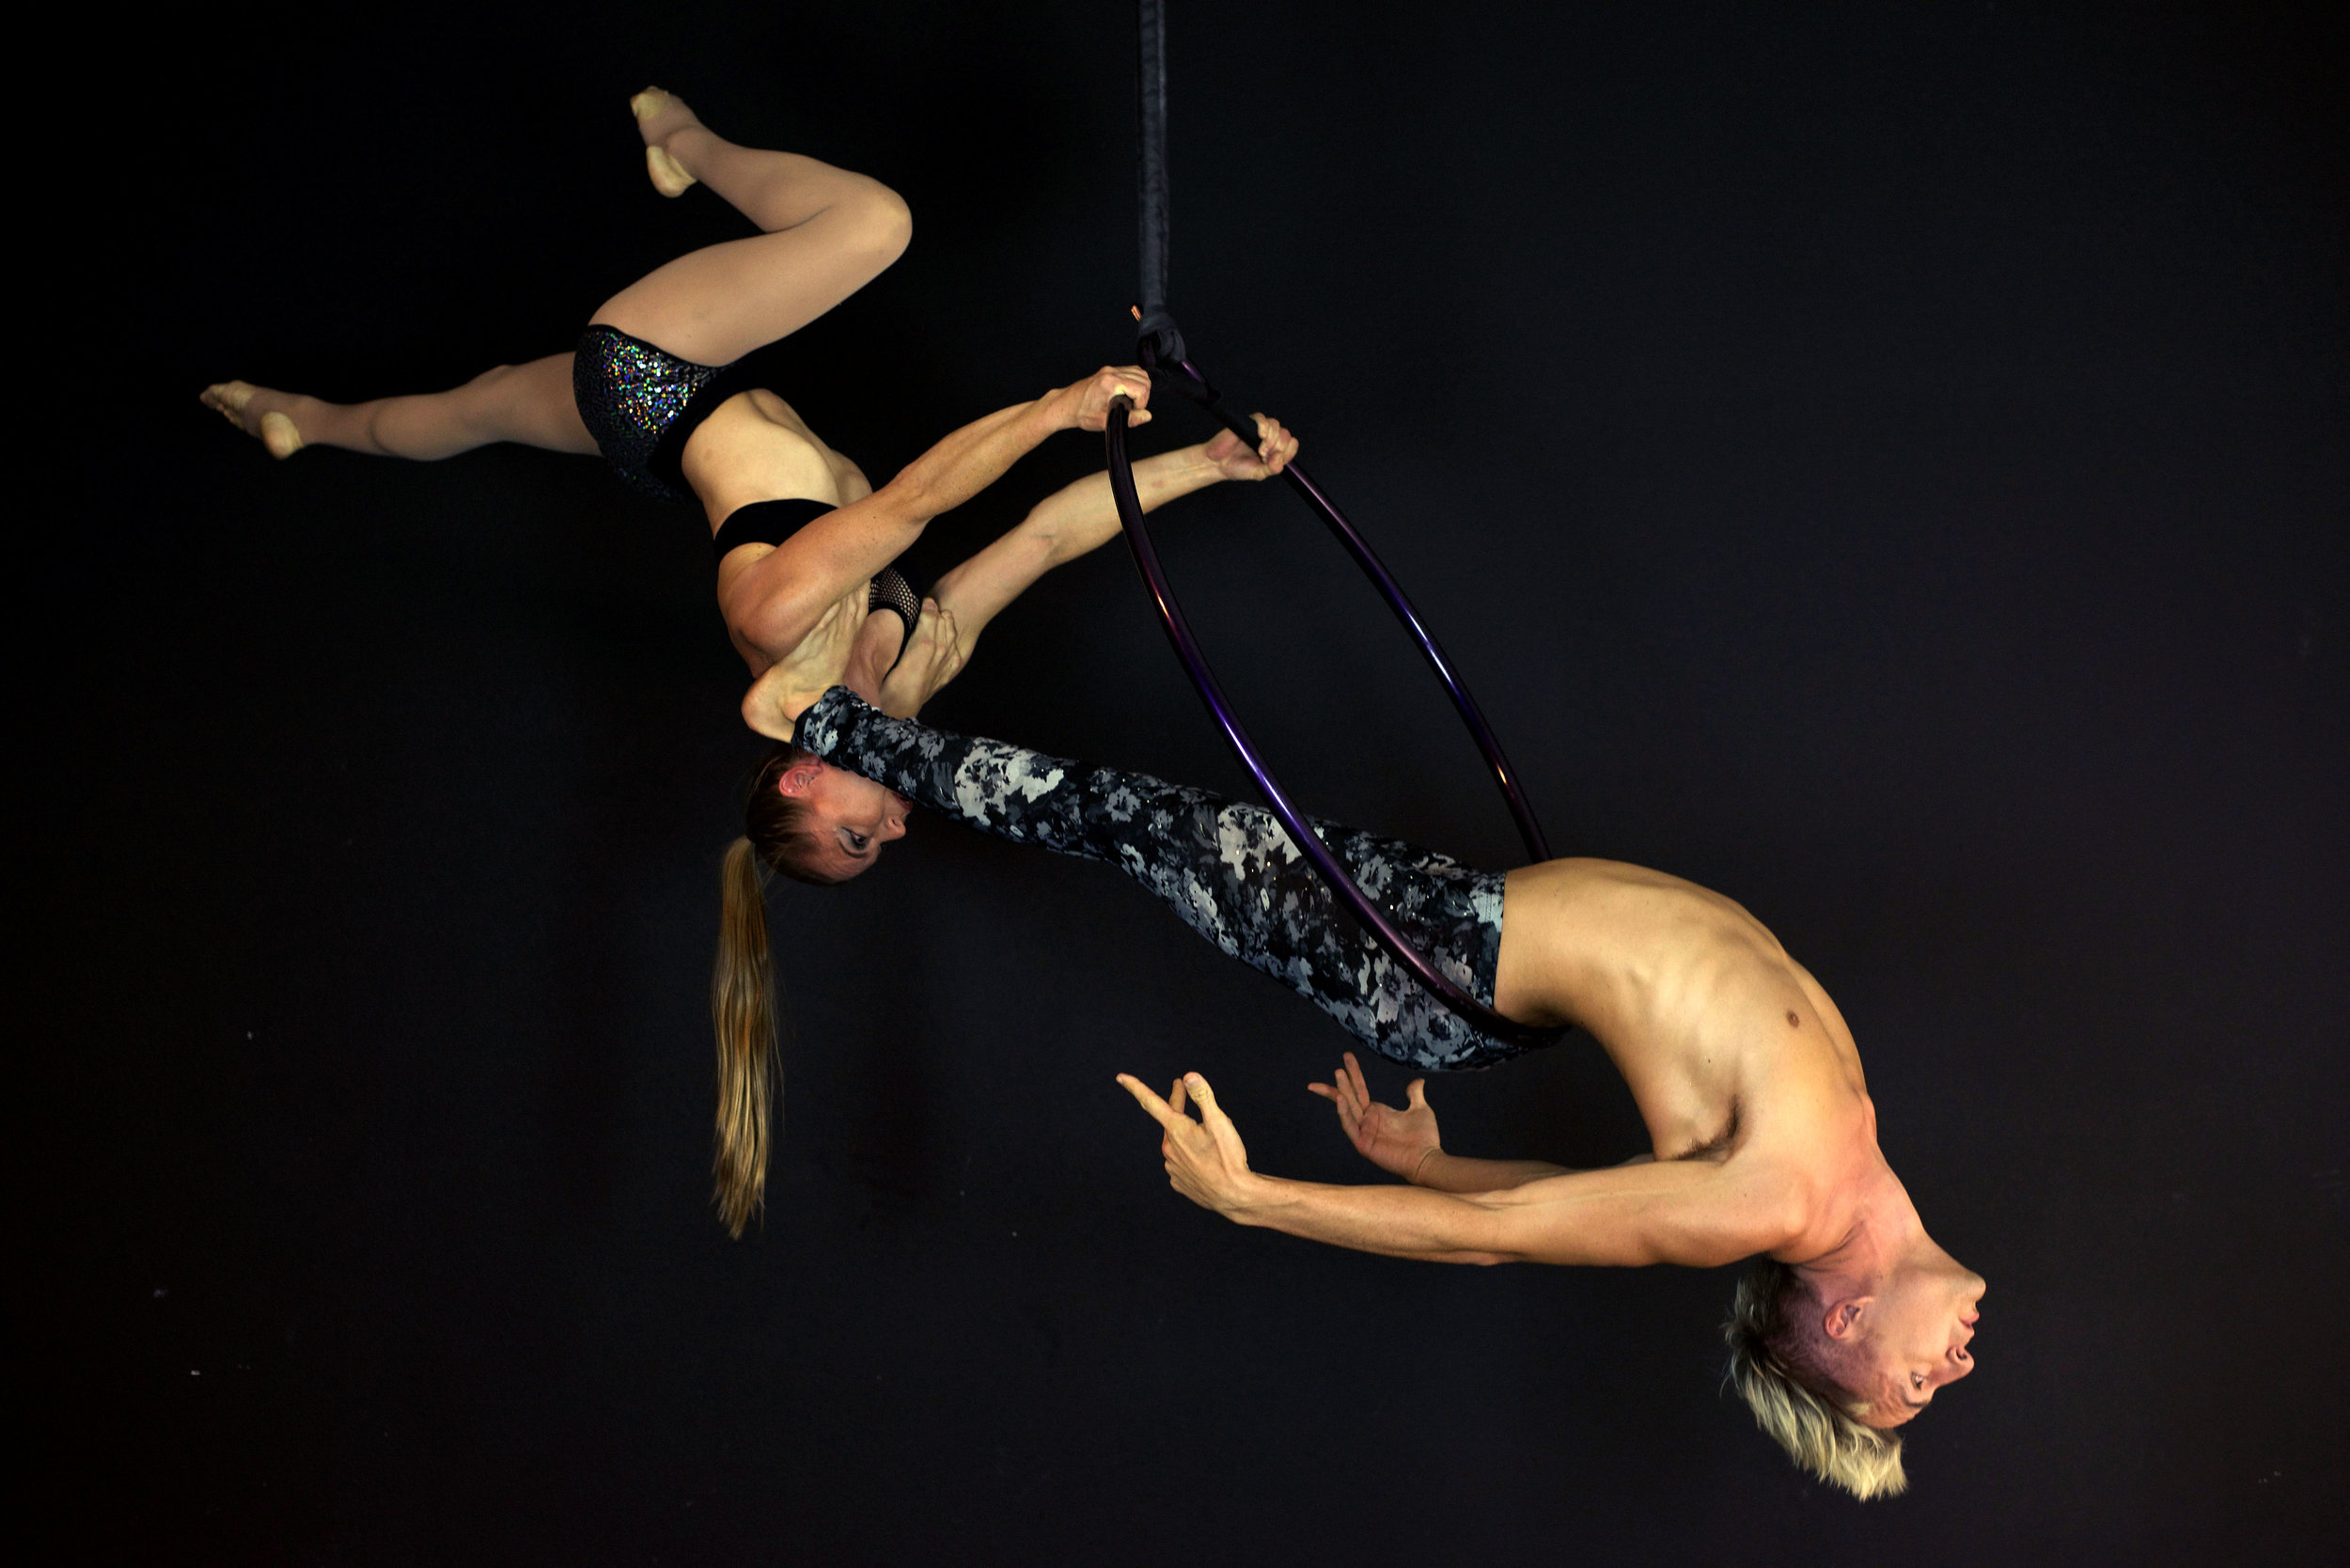 Nic and Holly Duo Aerial Hoop pose